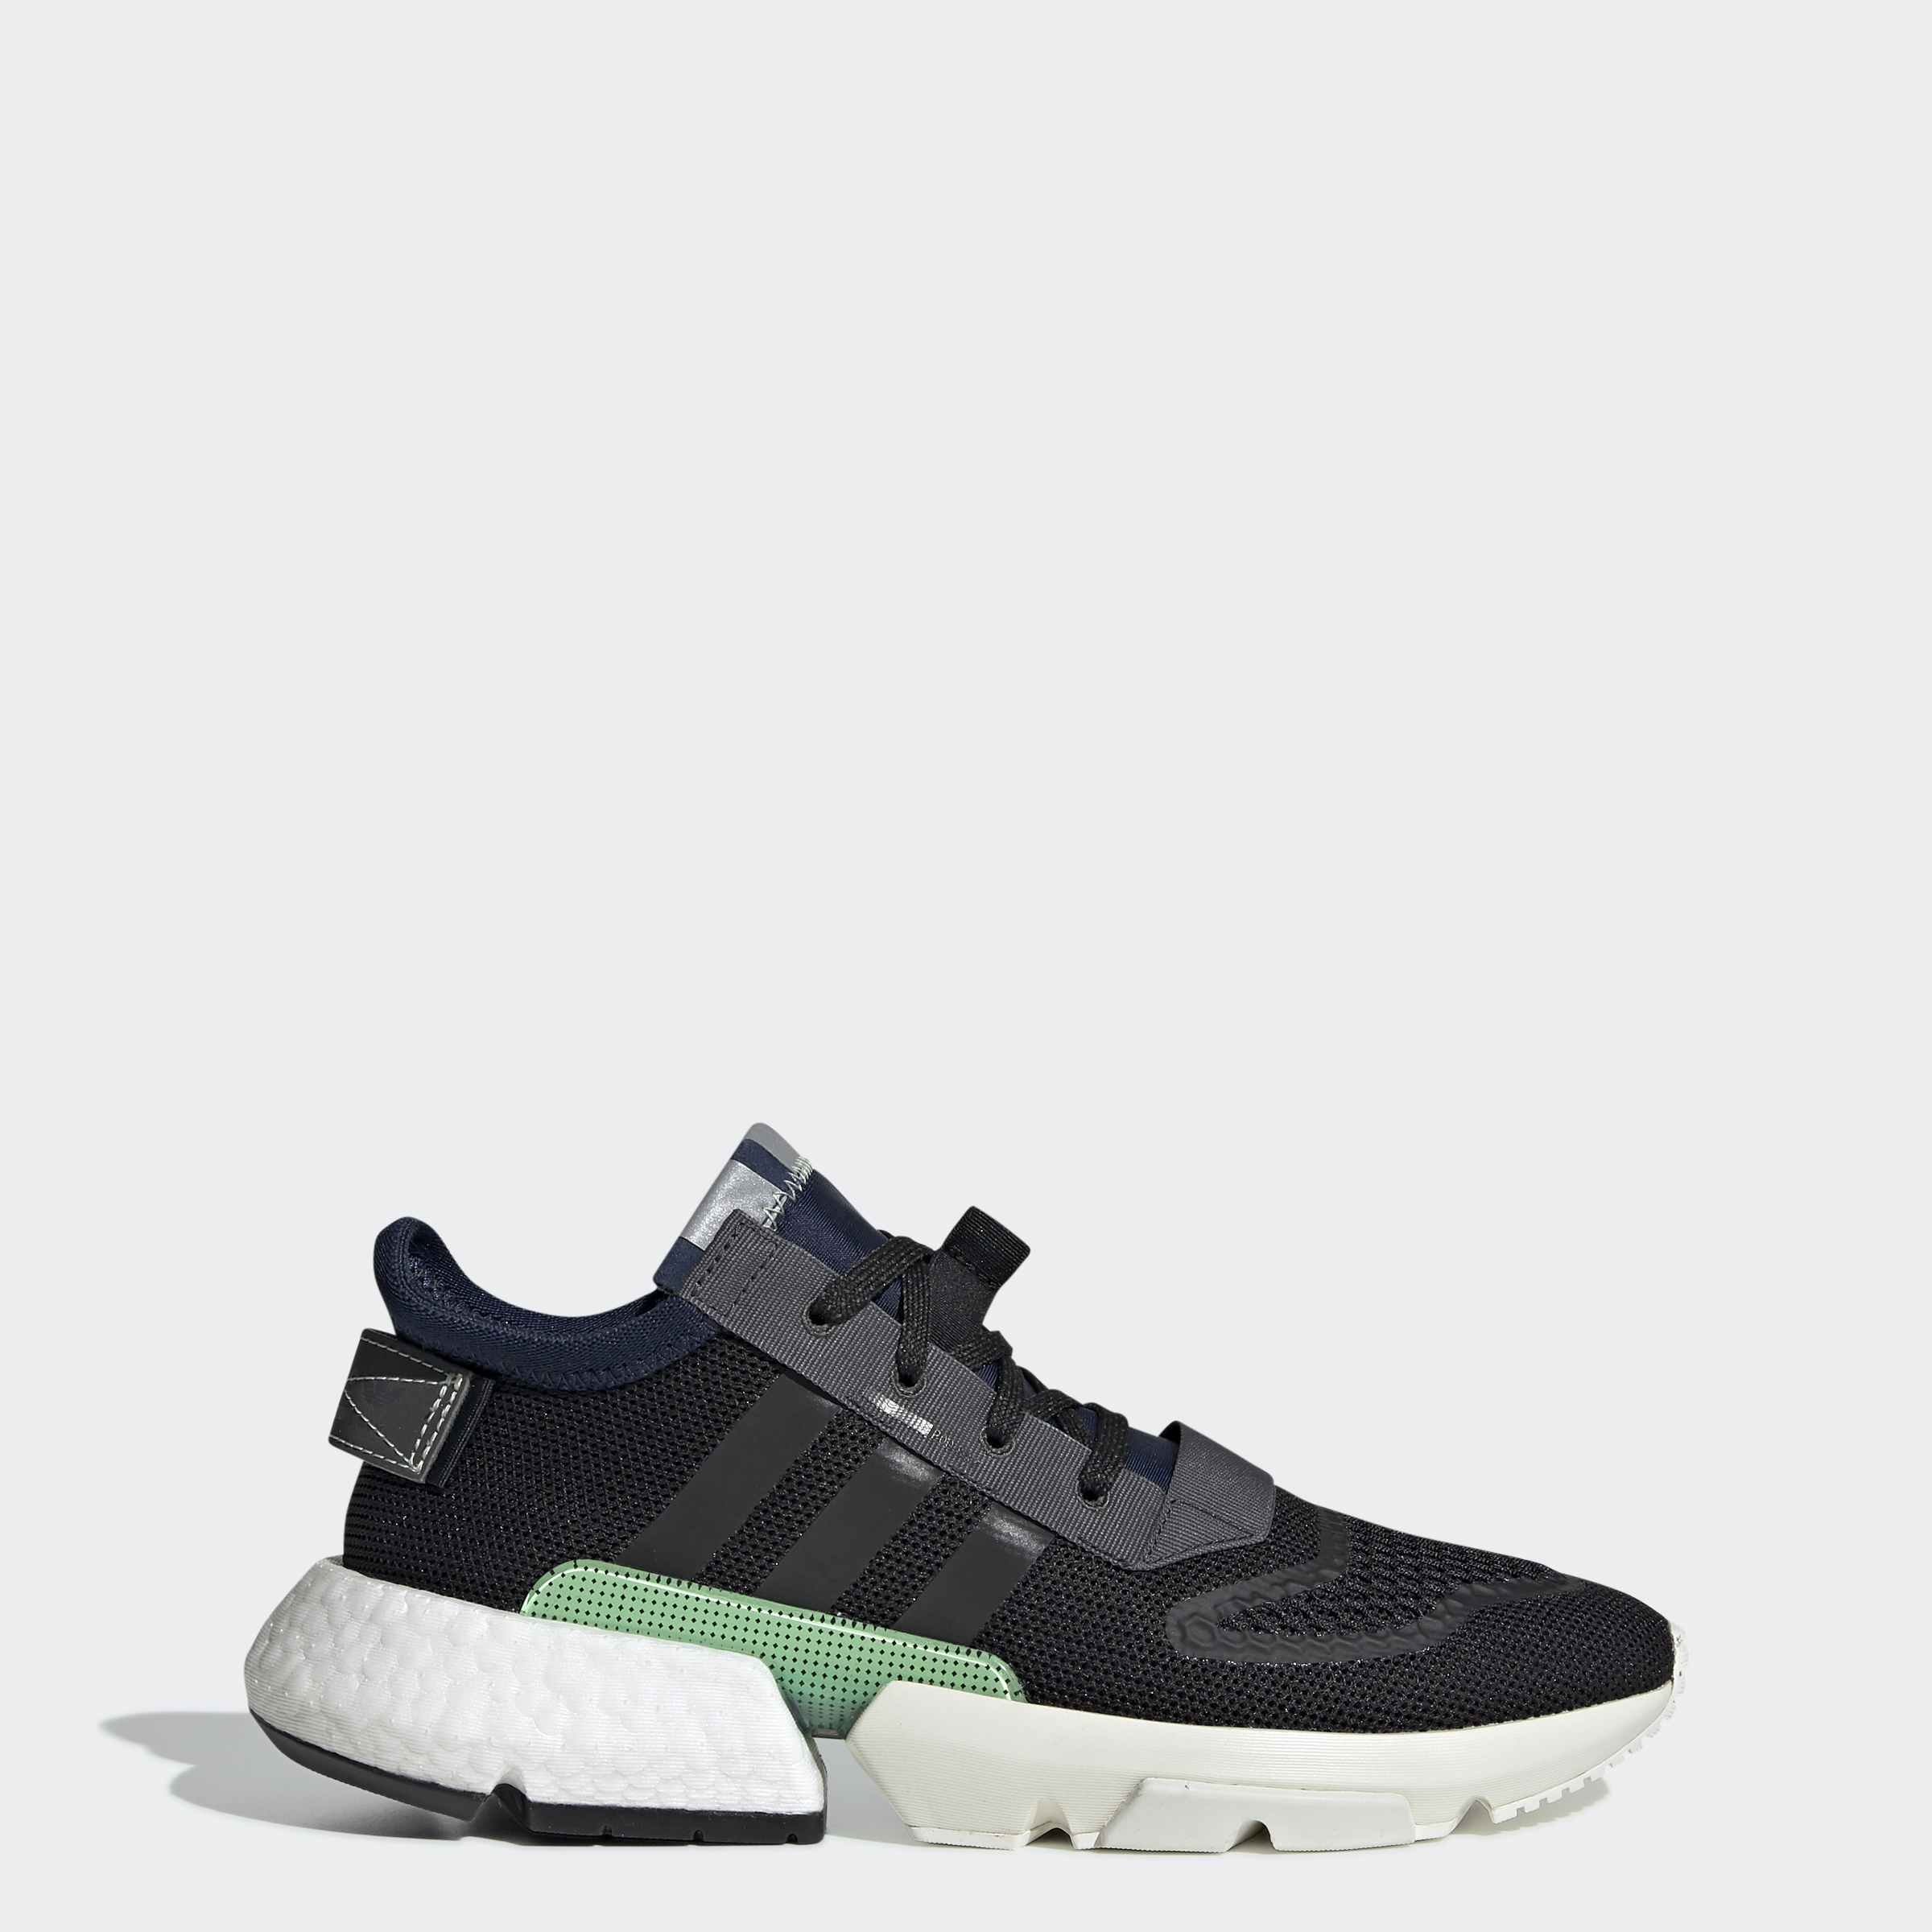 adidas-Originals-POD-S3-1-Shoes-Women-039-s thumbnail 16